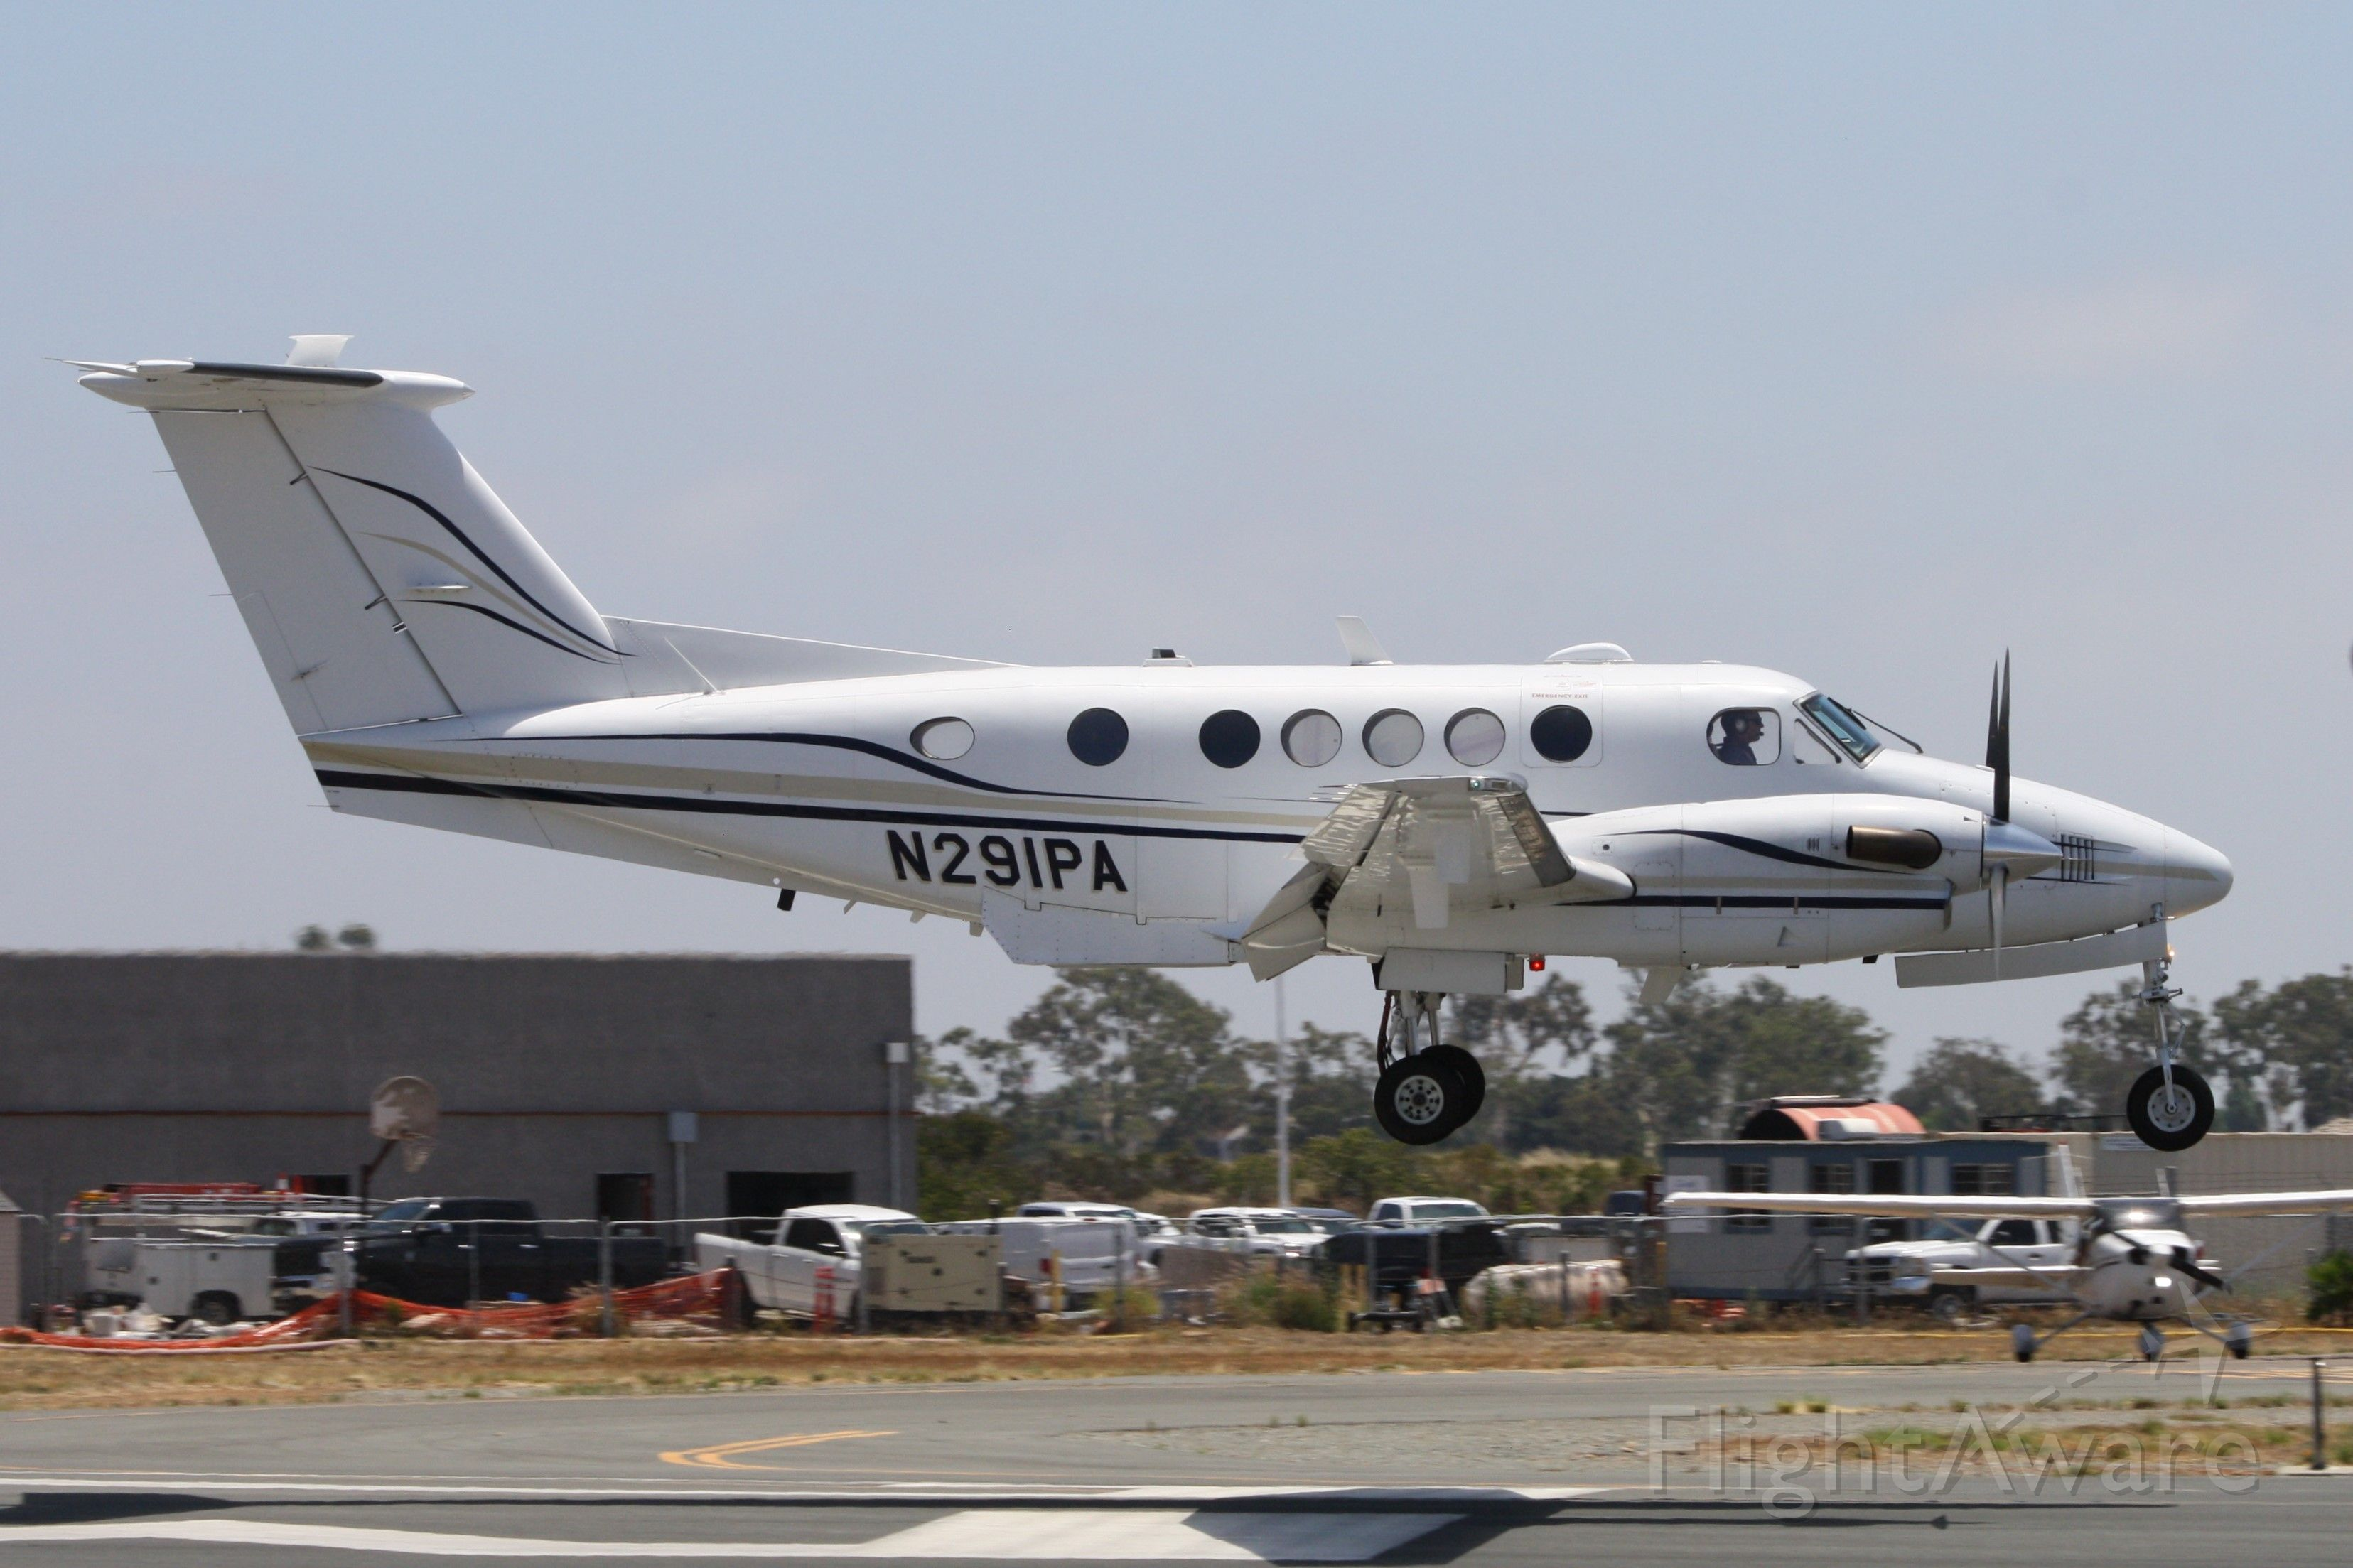 Beechcraft Super King Air 200 (N291PA) - A King Air from Northrop Grumman with special equipment. Landing at Mongtomery Gibbs Executive Airport in San Diego, July 17 2019. Taken from the 94th Aero Squadron restaurant adjacent to runway 23.